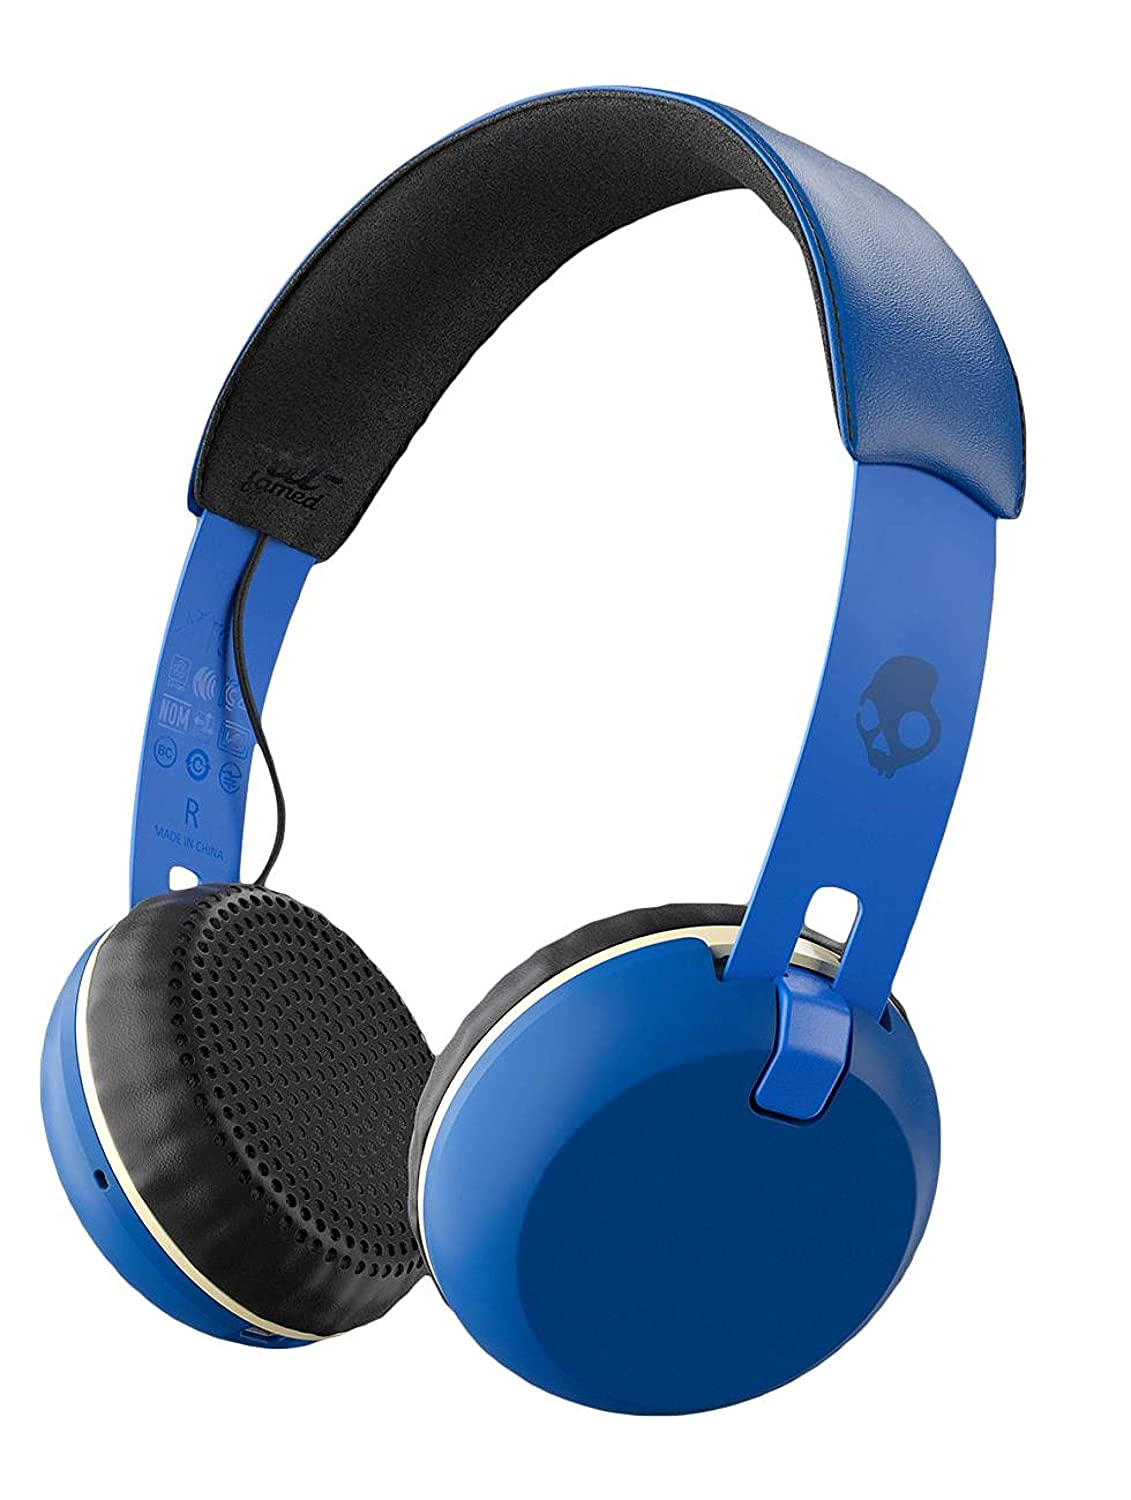 Skullcandy Grind Bluetooth Wireless On-Ear Headphones - Royal Blue/Cream 2019